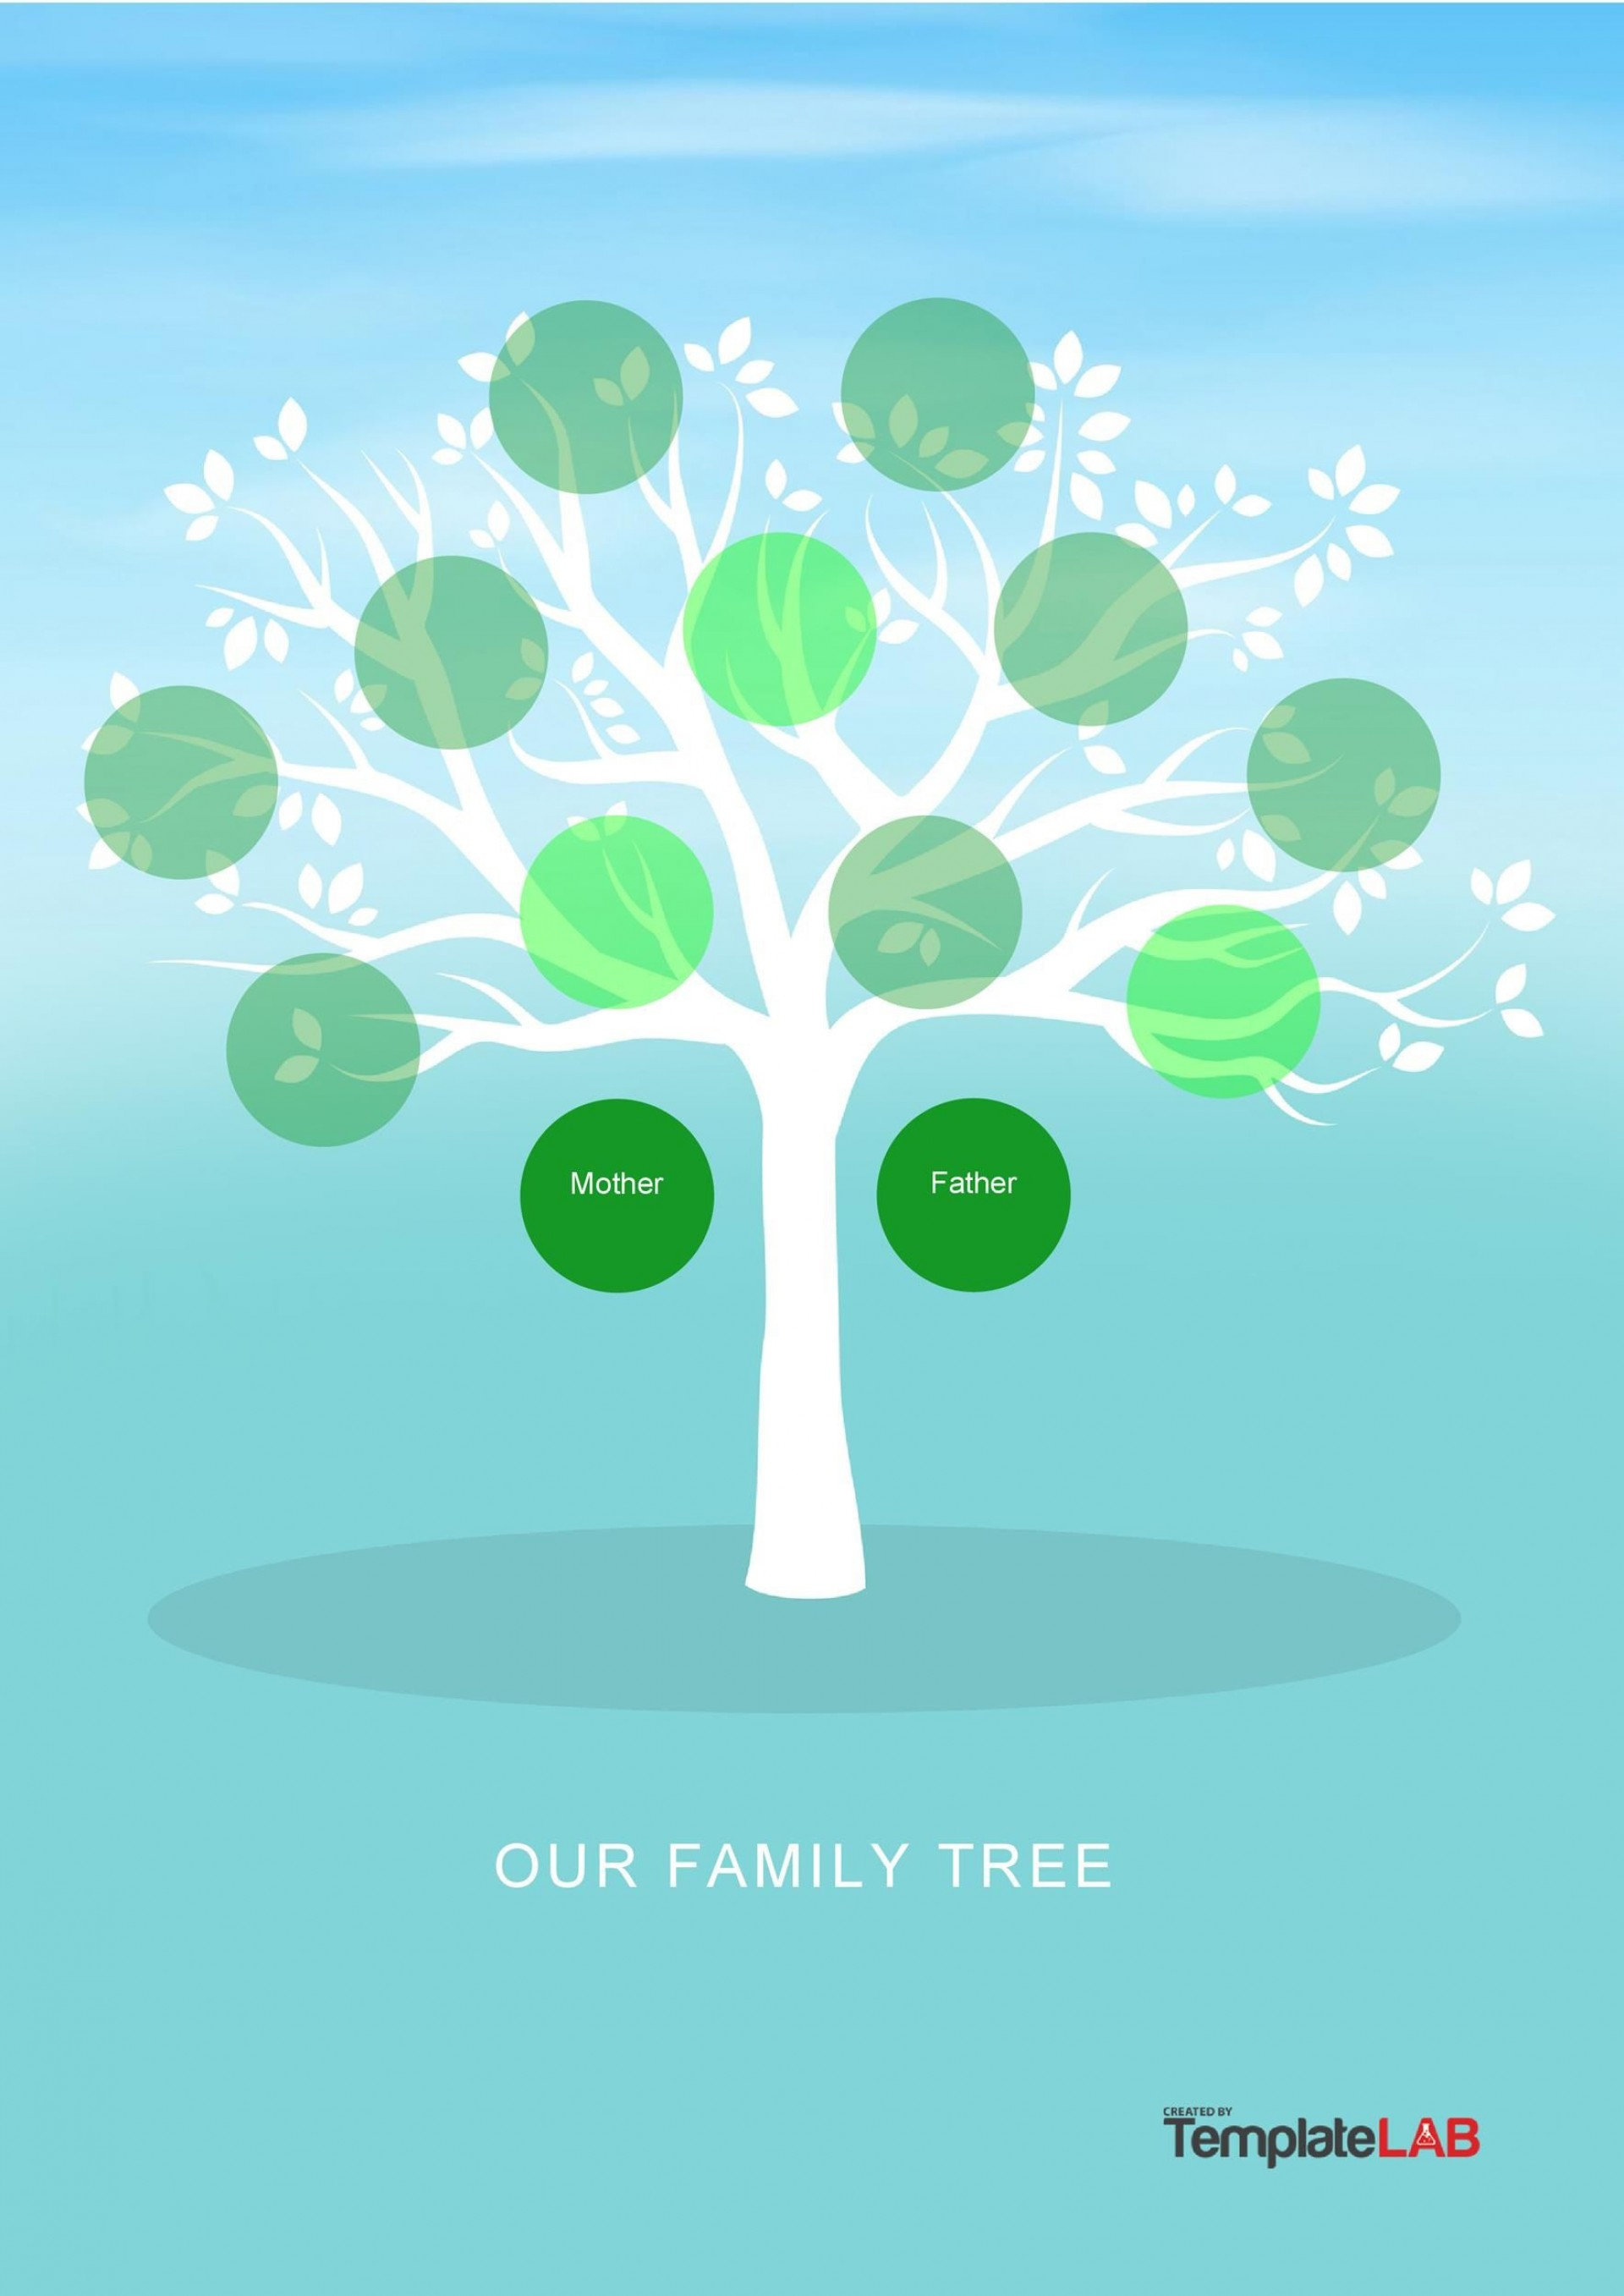 004 Top Family Tree Template Word Free Download Idea 1920